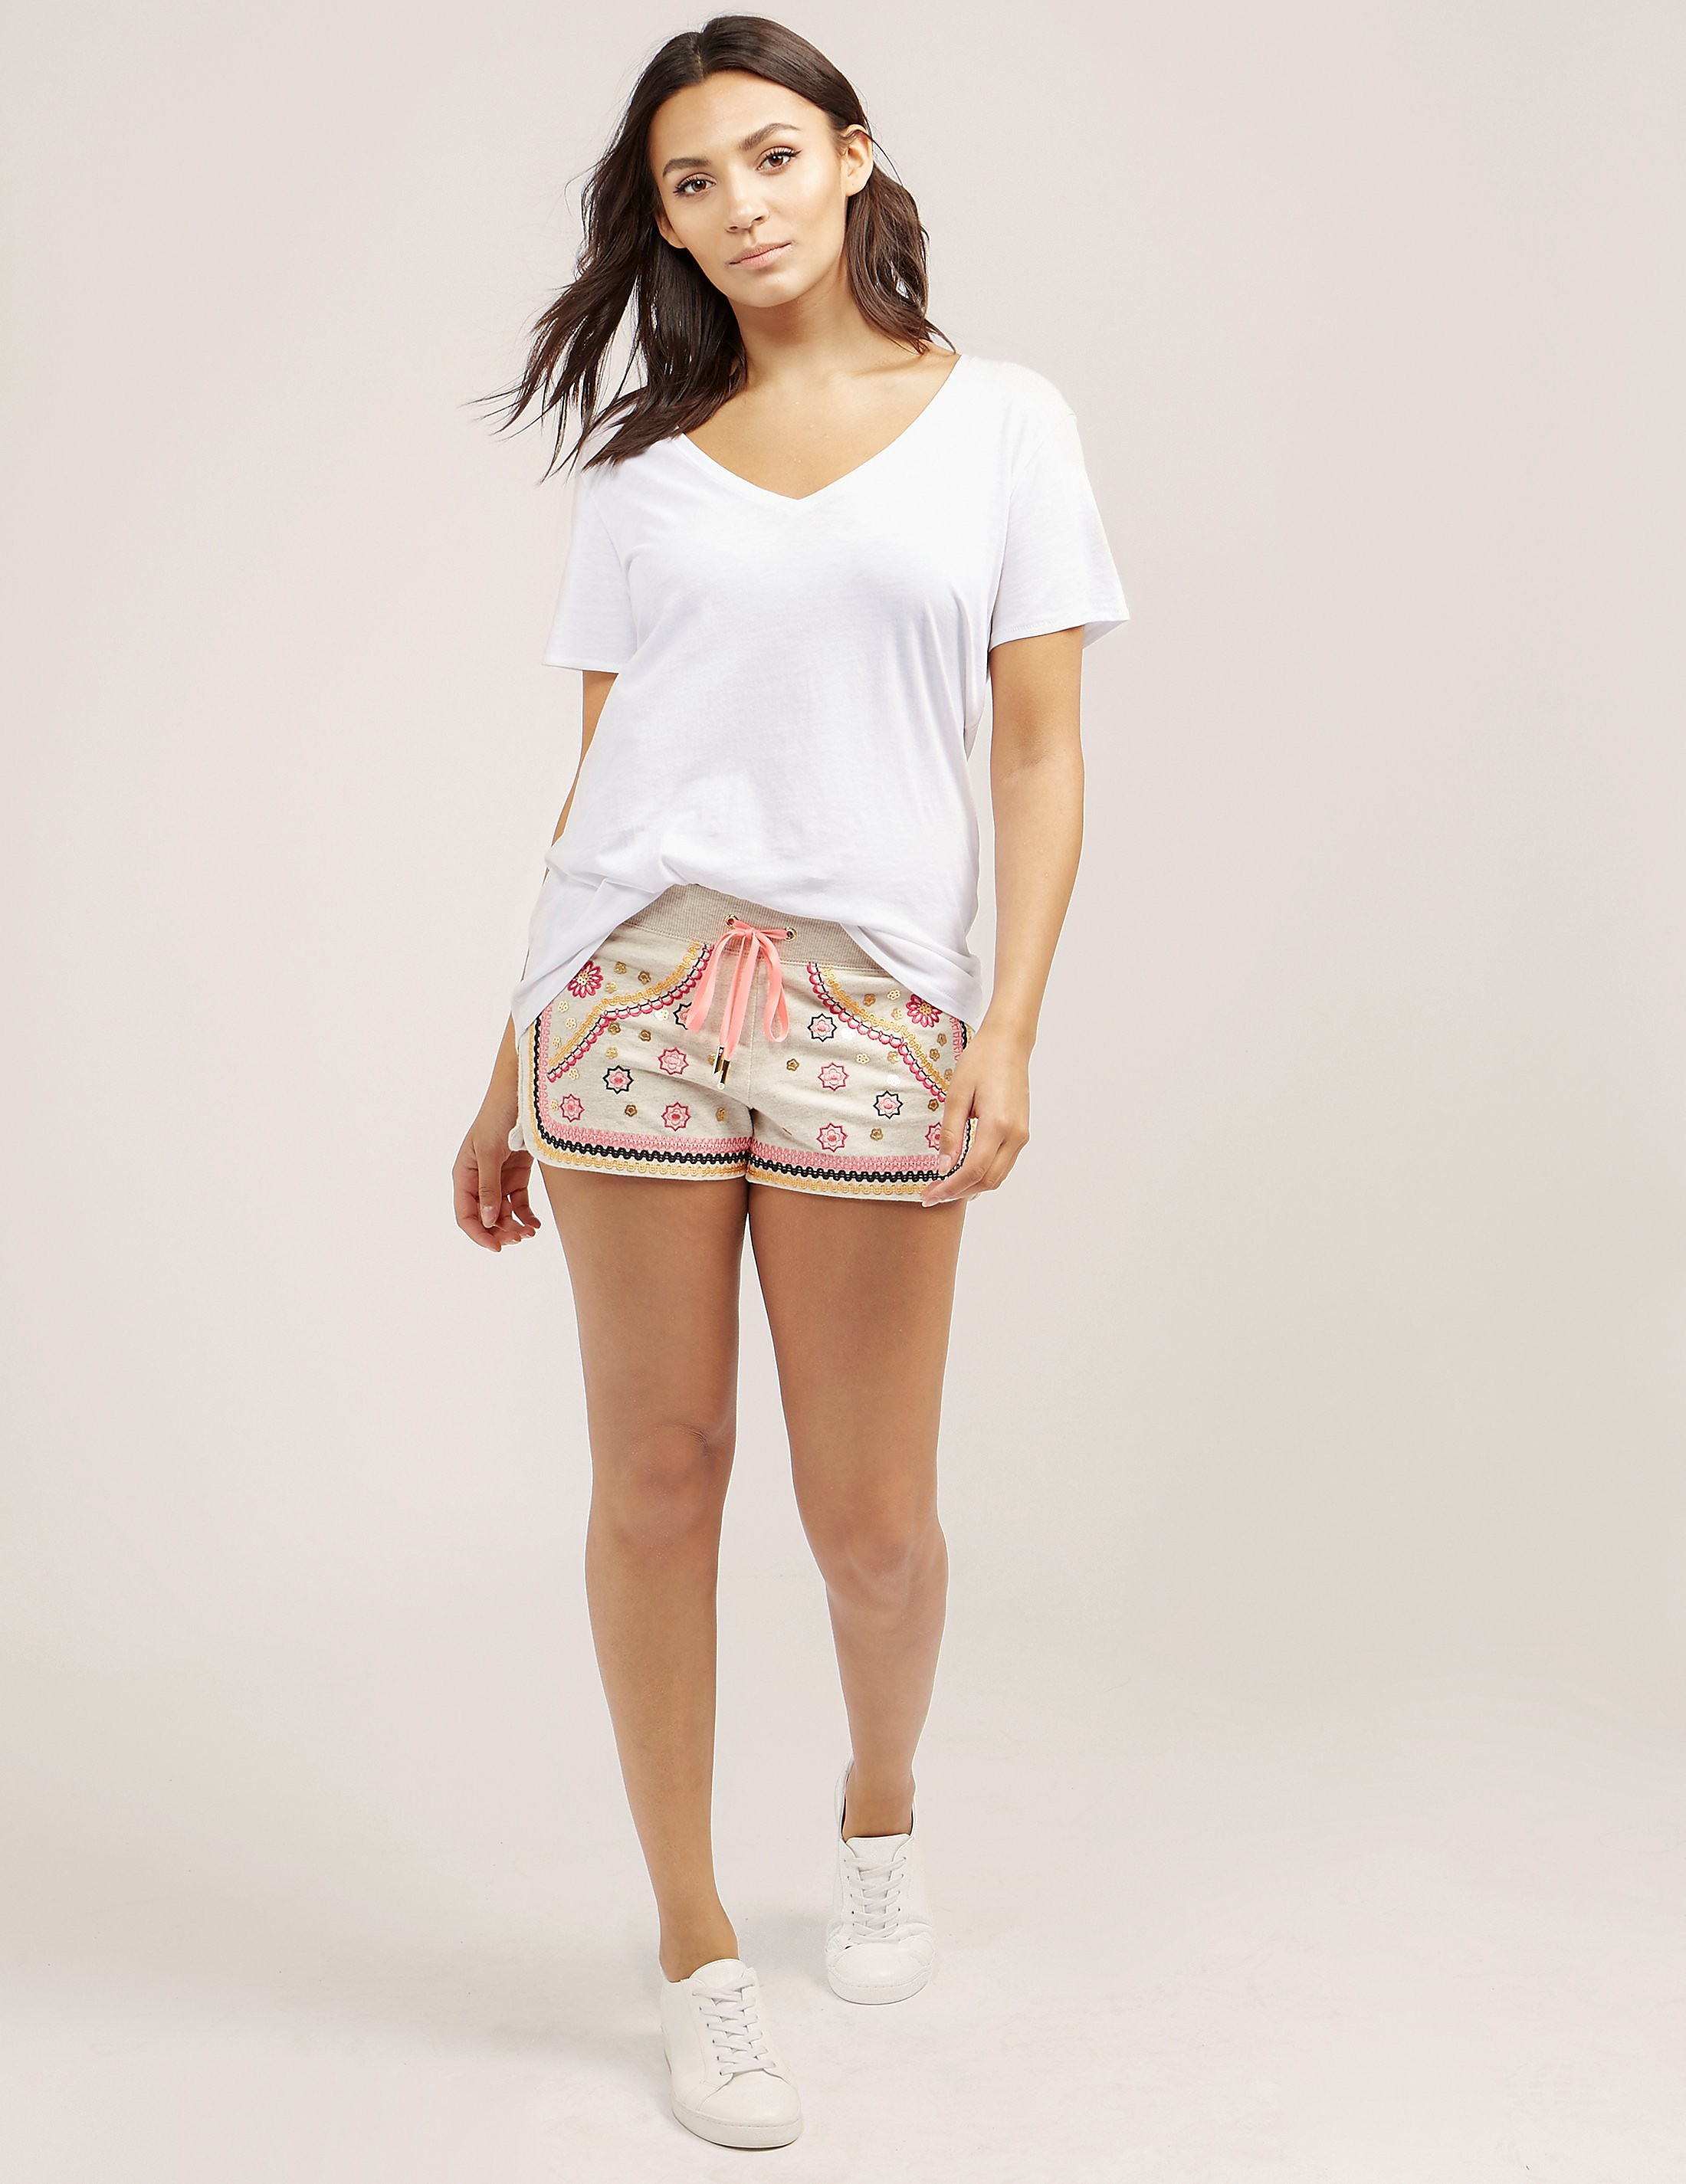 Juicy Couture Marrakech Short